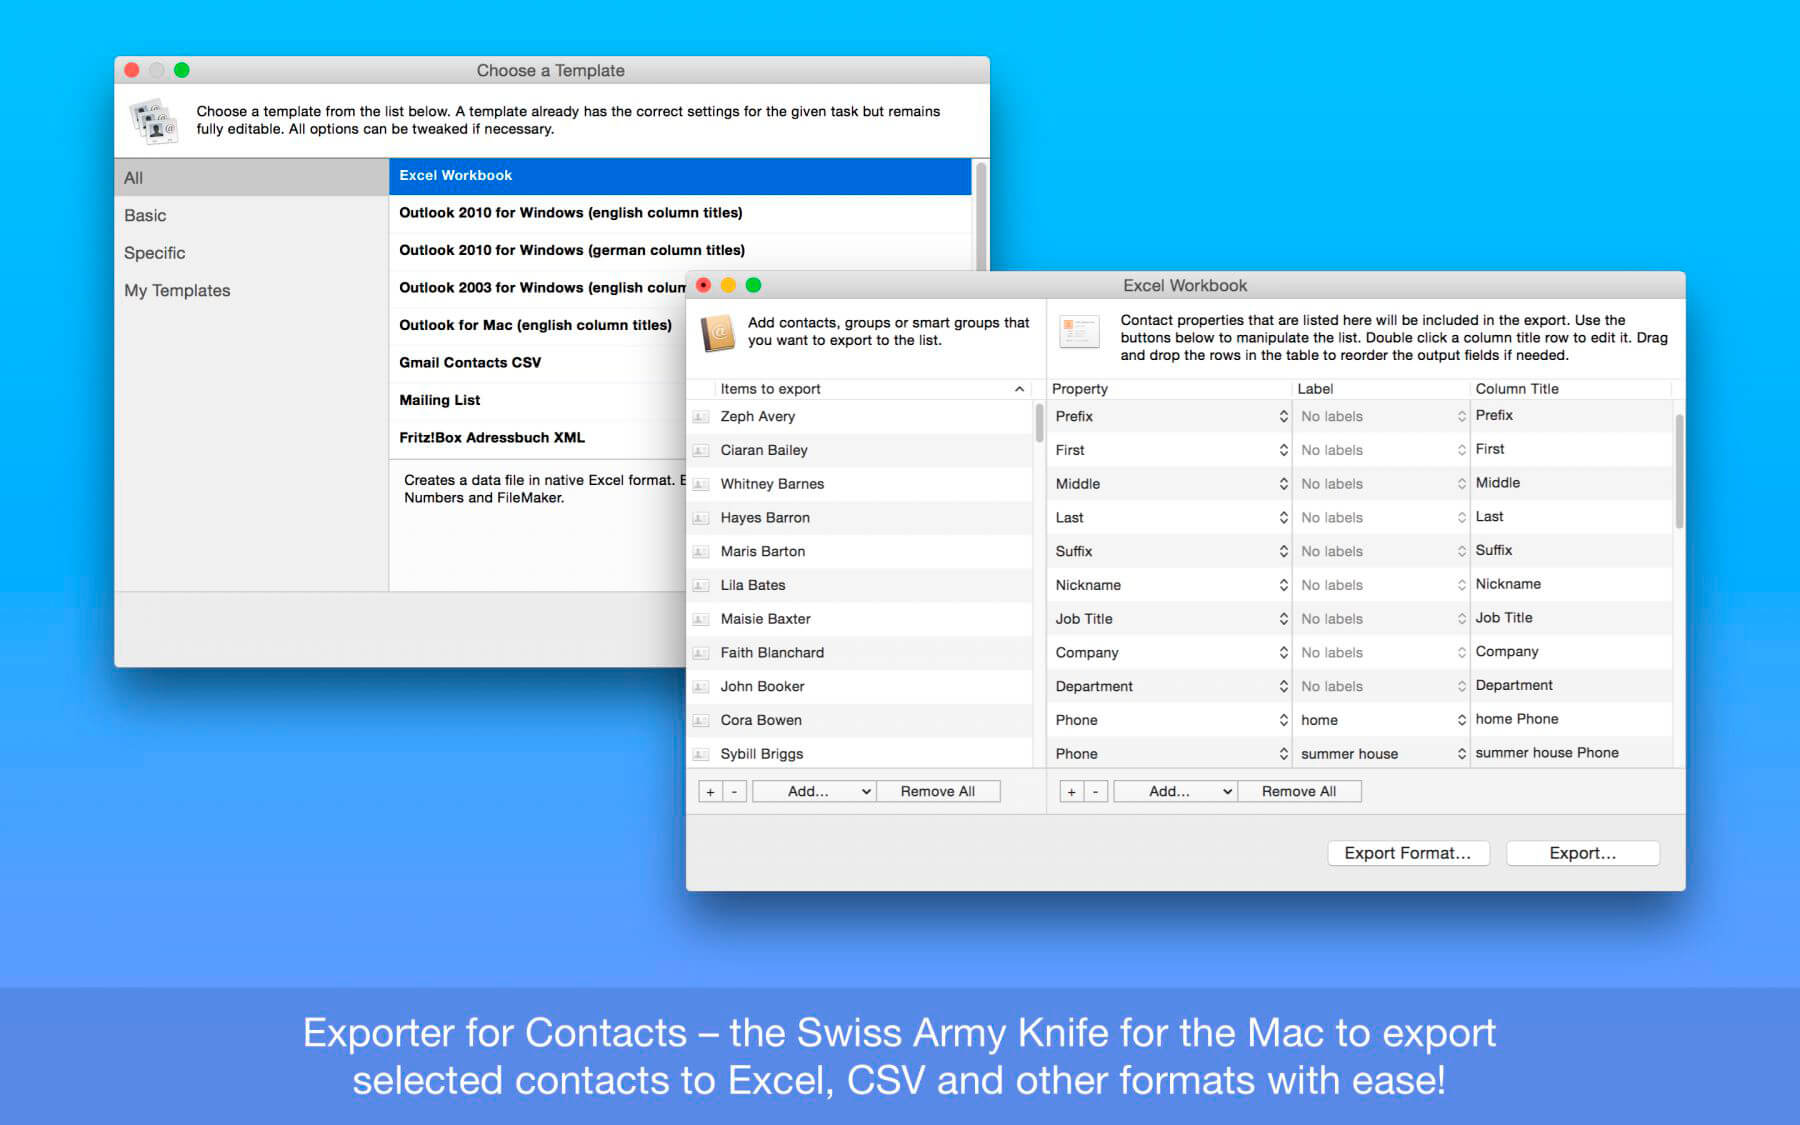 Exporter for Contacts 1.12